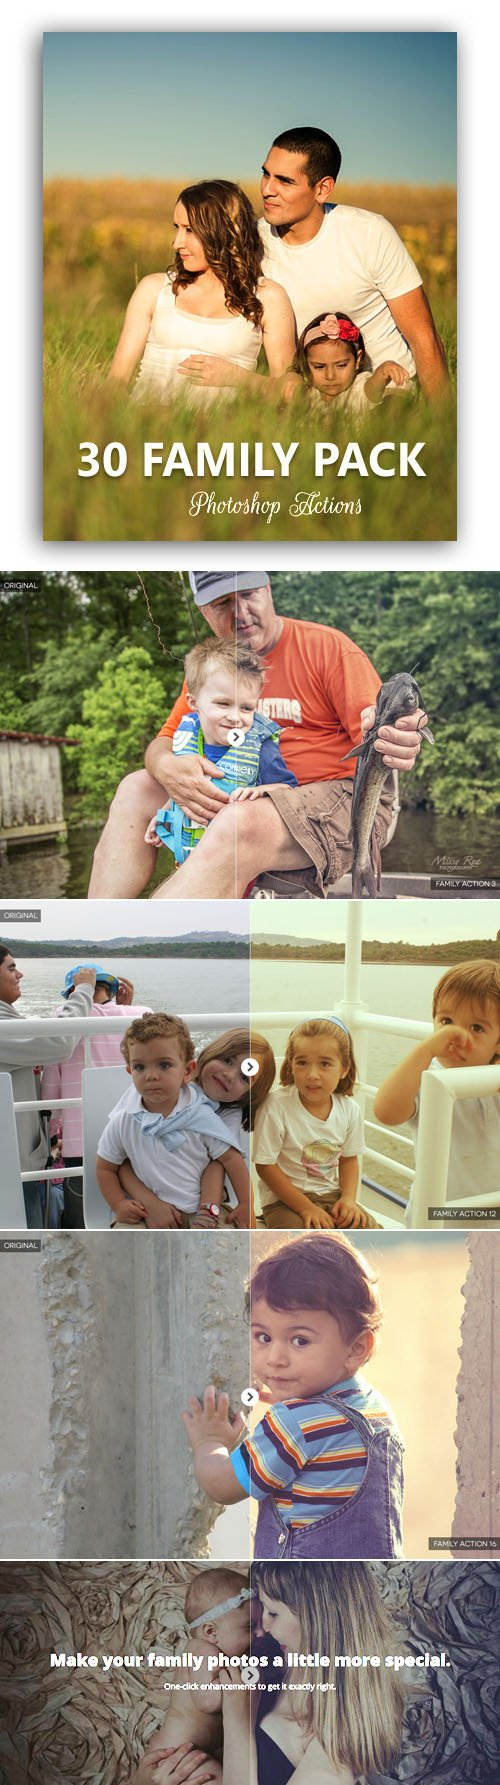 30 Photoshop Actions for Family Portraits